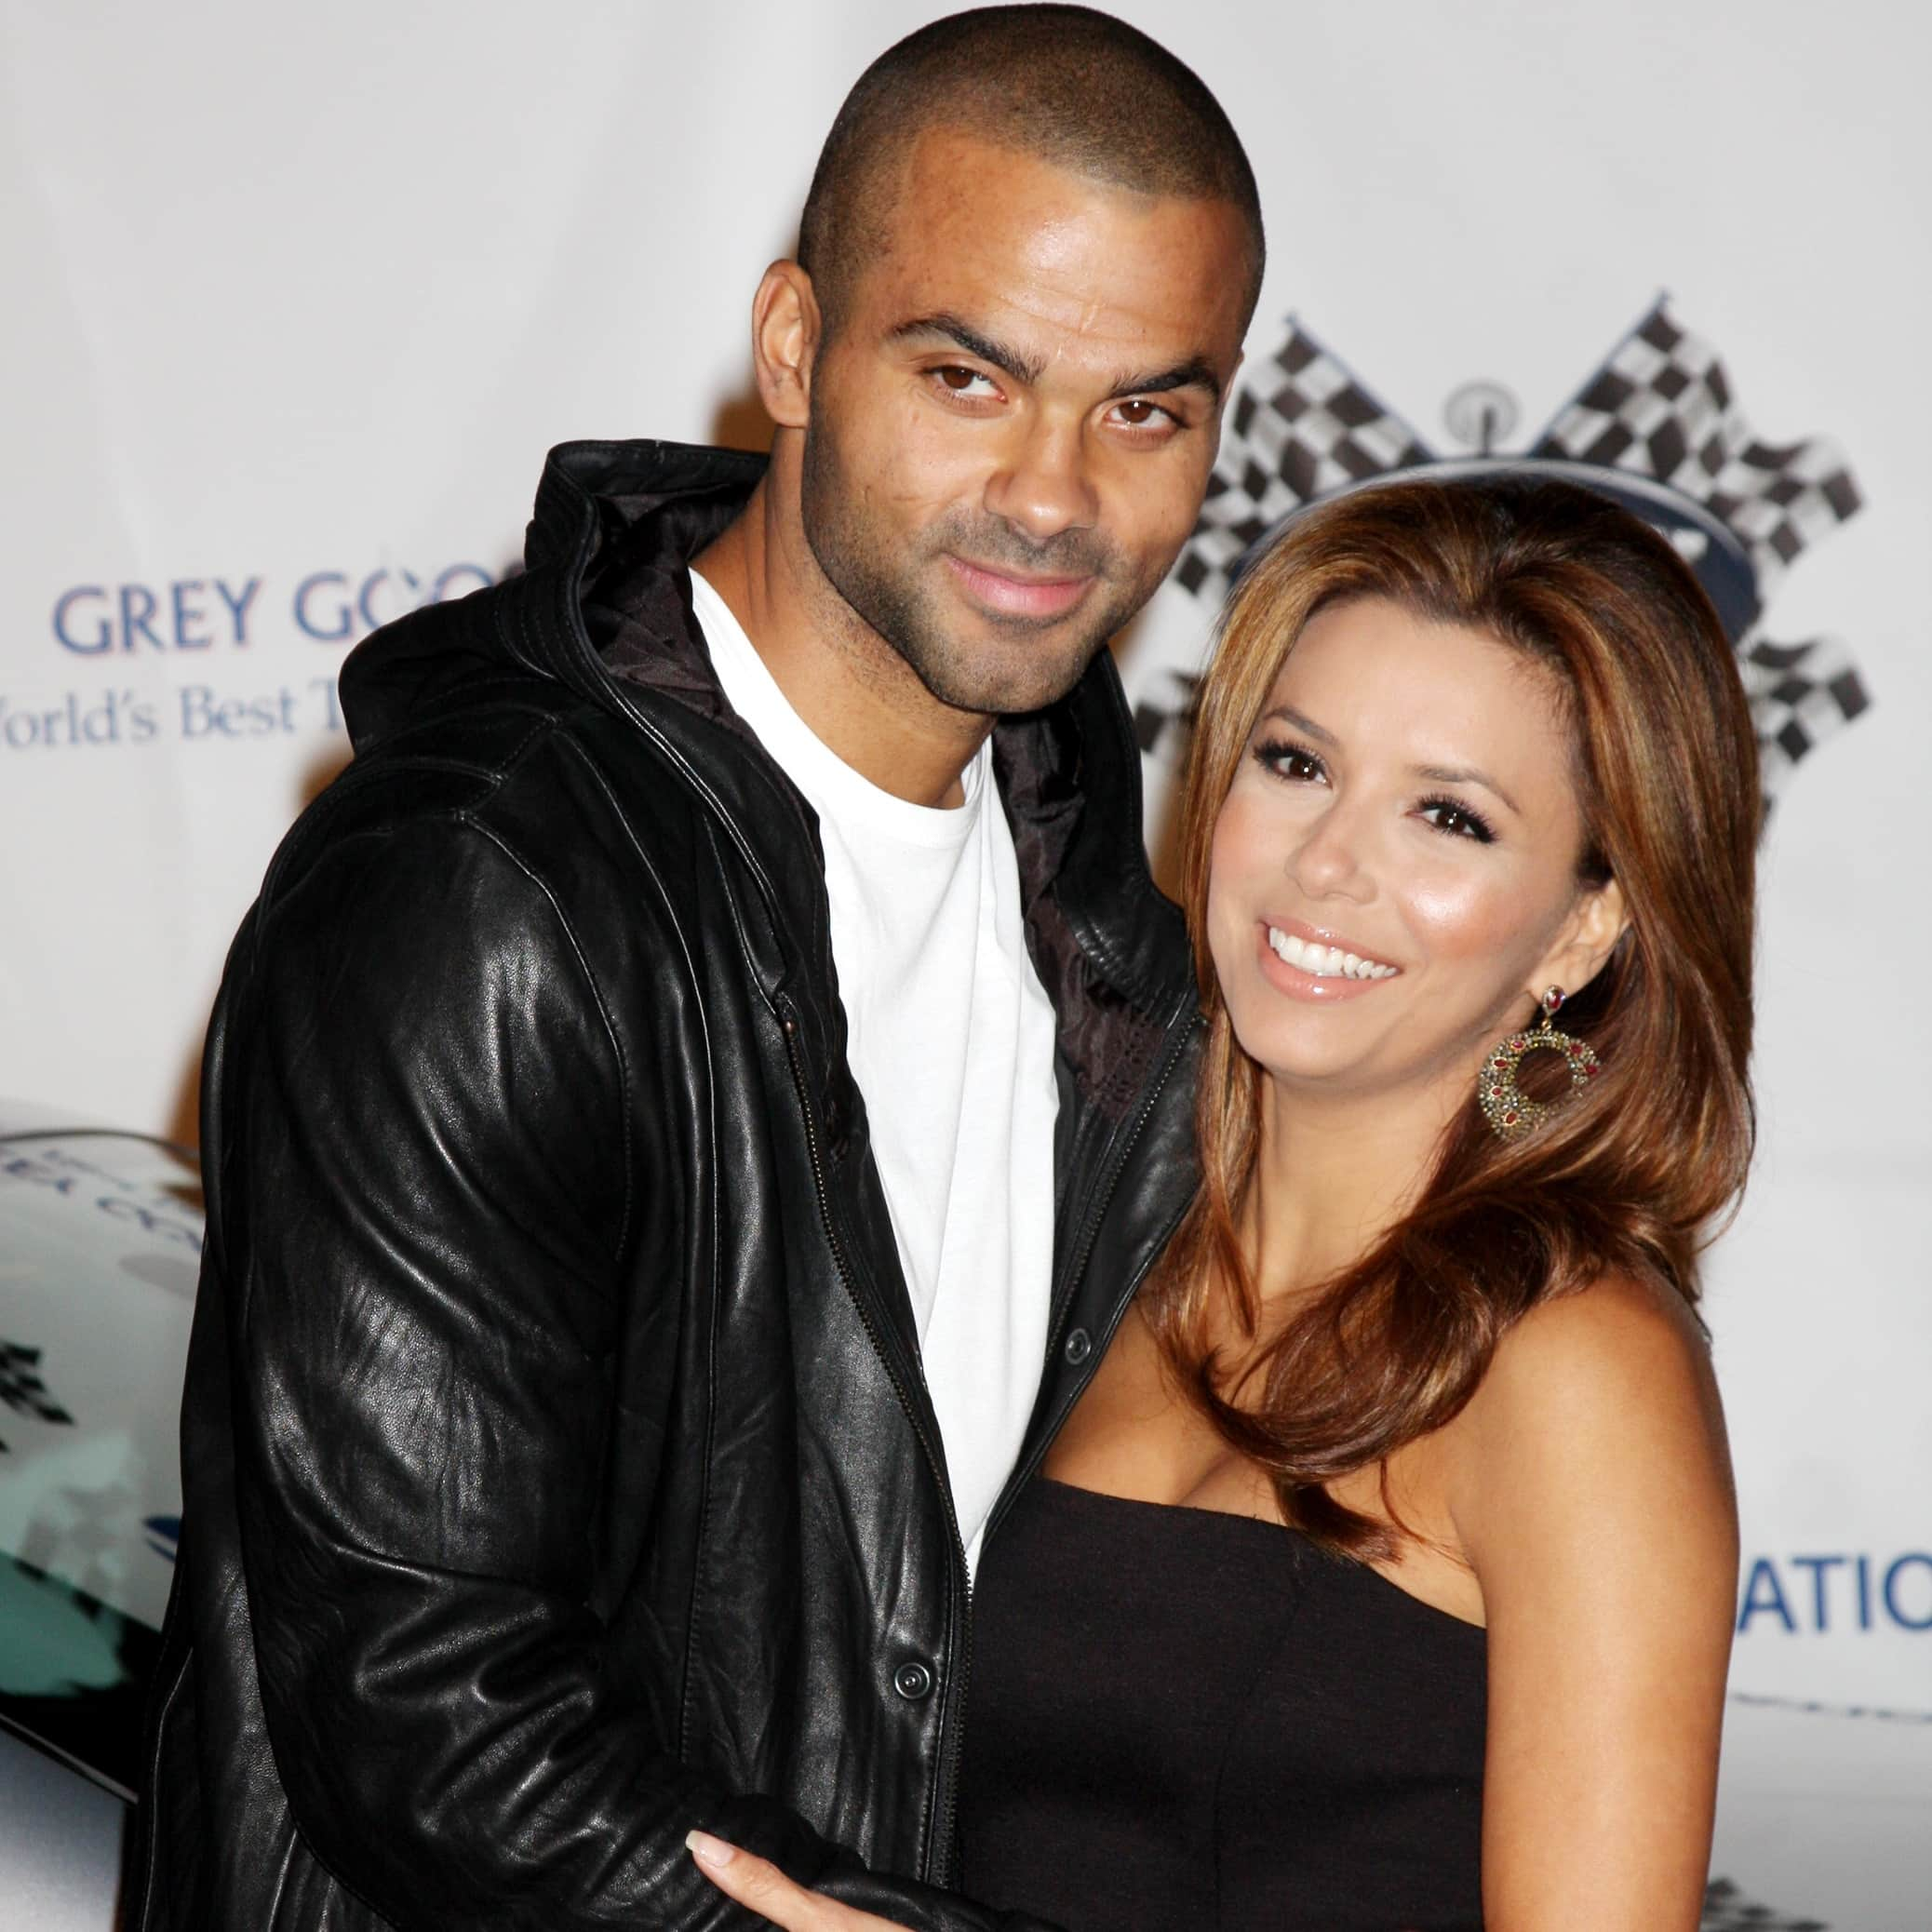 Eva Longoria and Tony Parker divorced after she found numerous text messages from another woman on her husband's phone